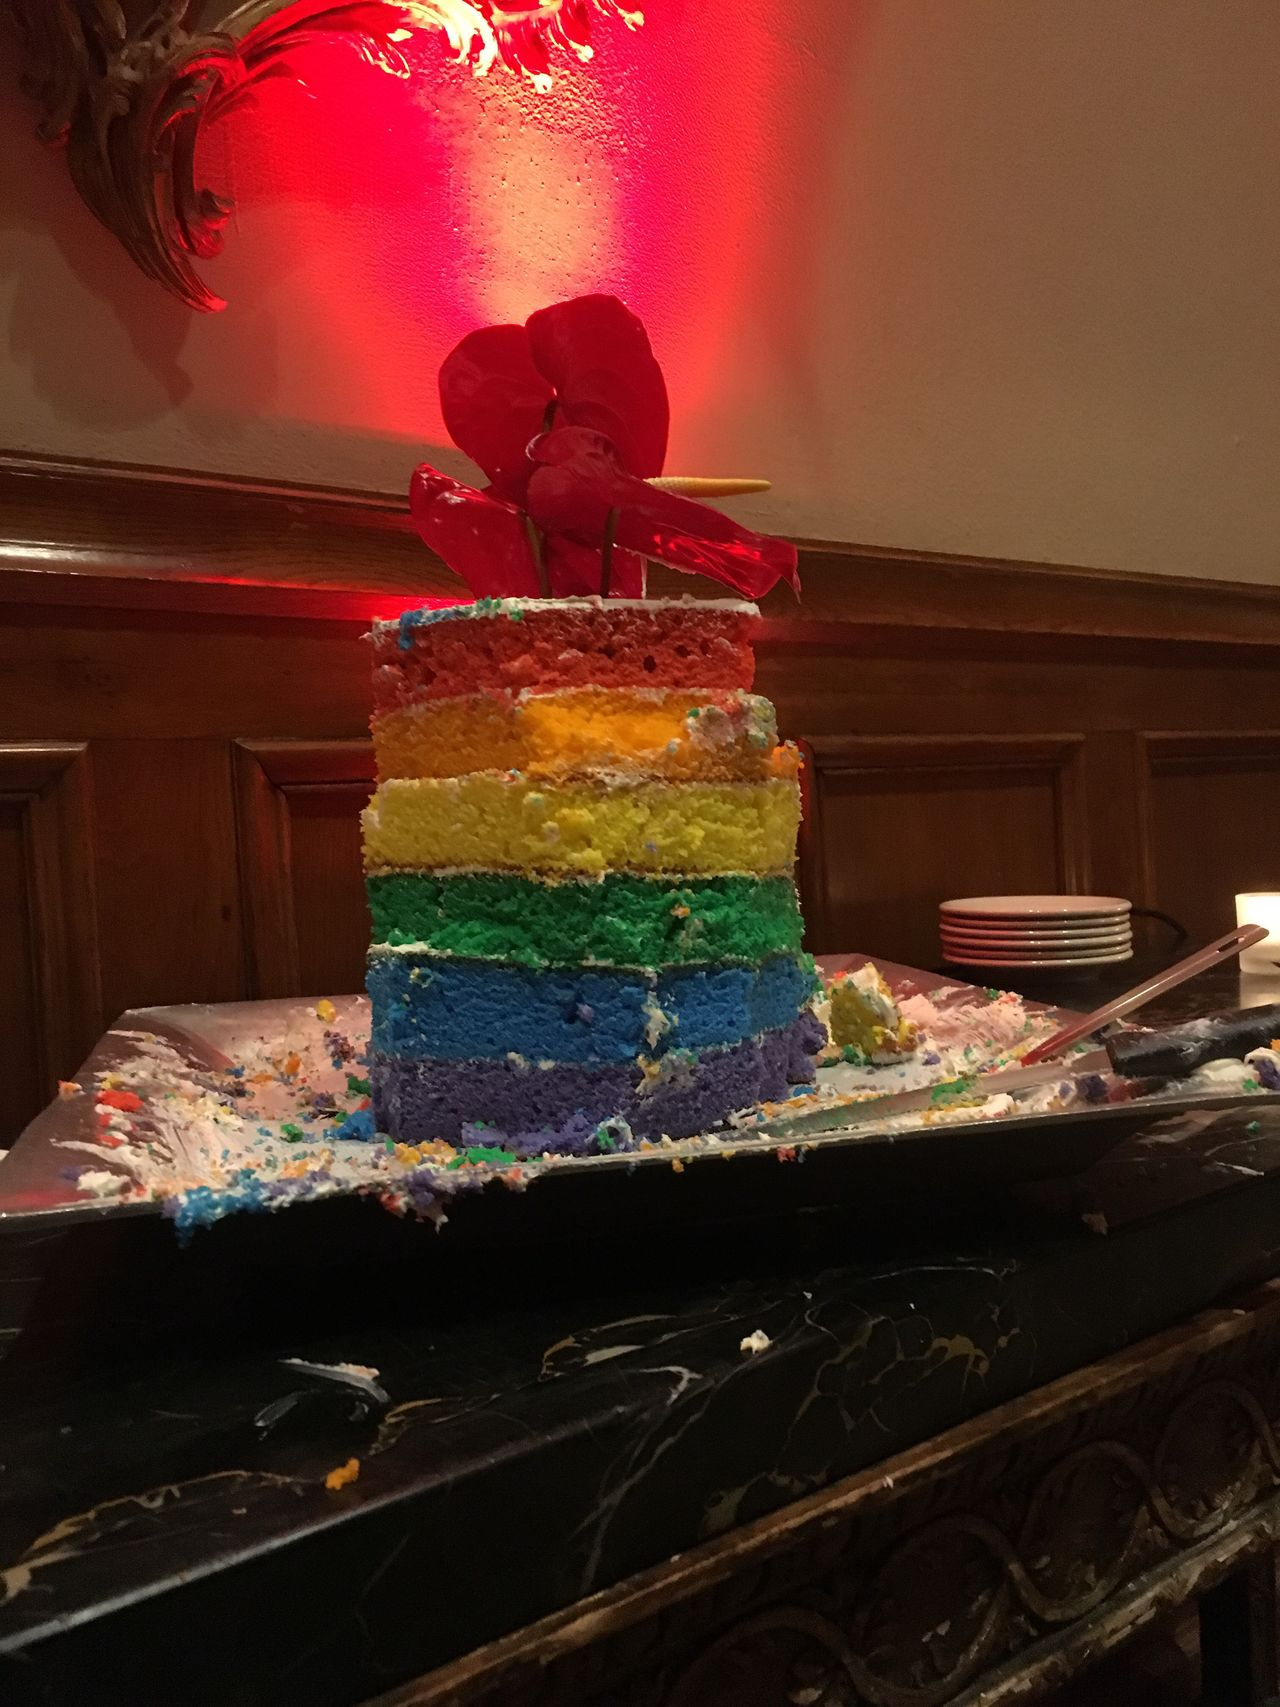 Celebrating love at a gay wedding. Multi Colored Sweet Food Indulgence Celebration Food And Drink Food Dessert Indoors  No Person Religion Temple Wedding Celebration Gay Pride Wedding Cake Still Life